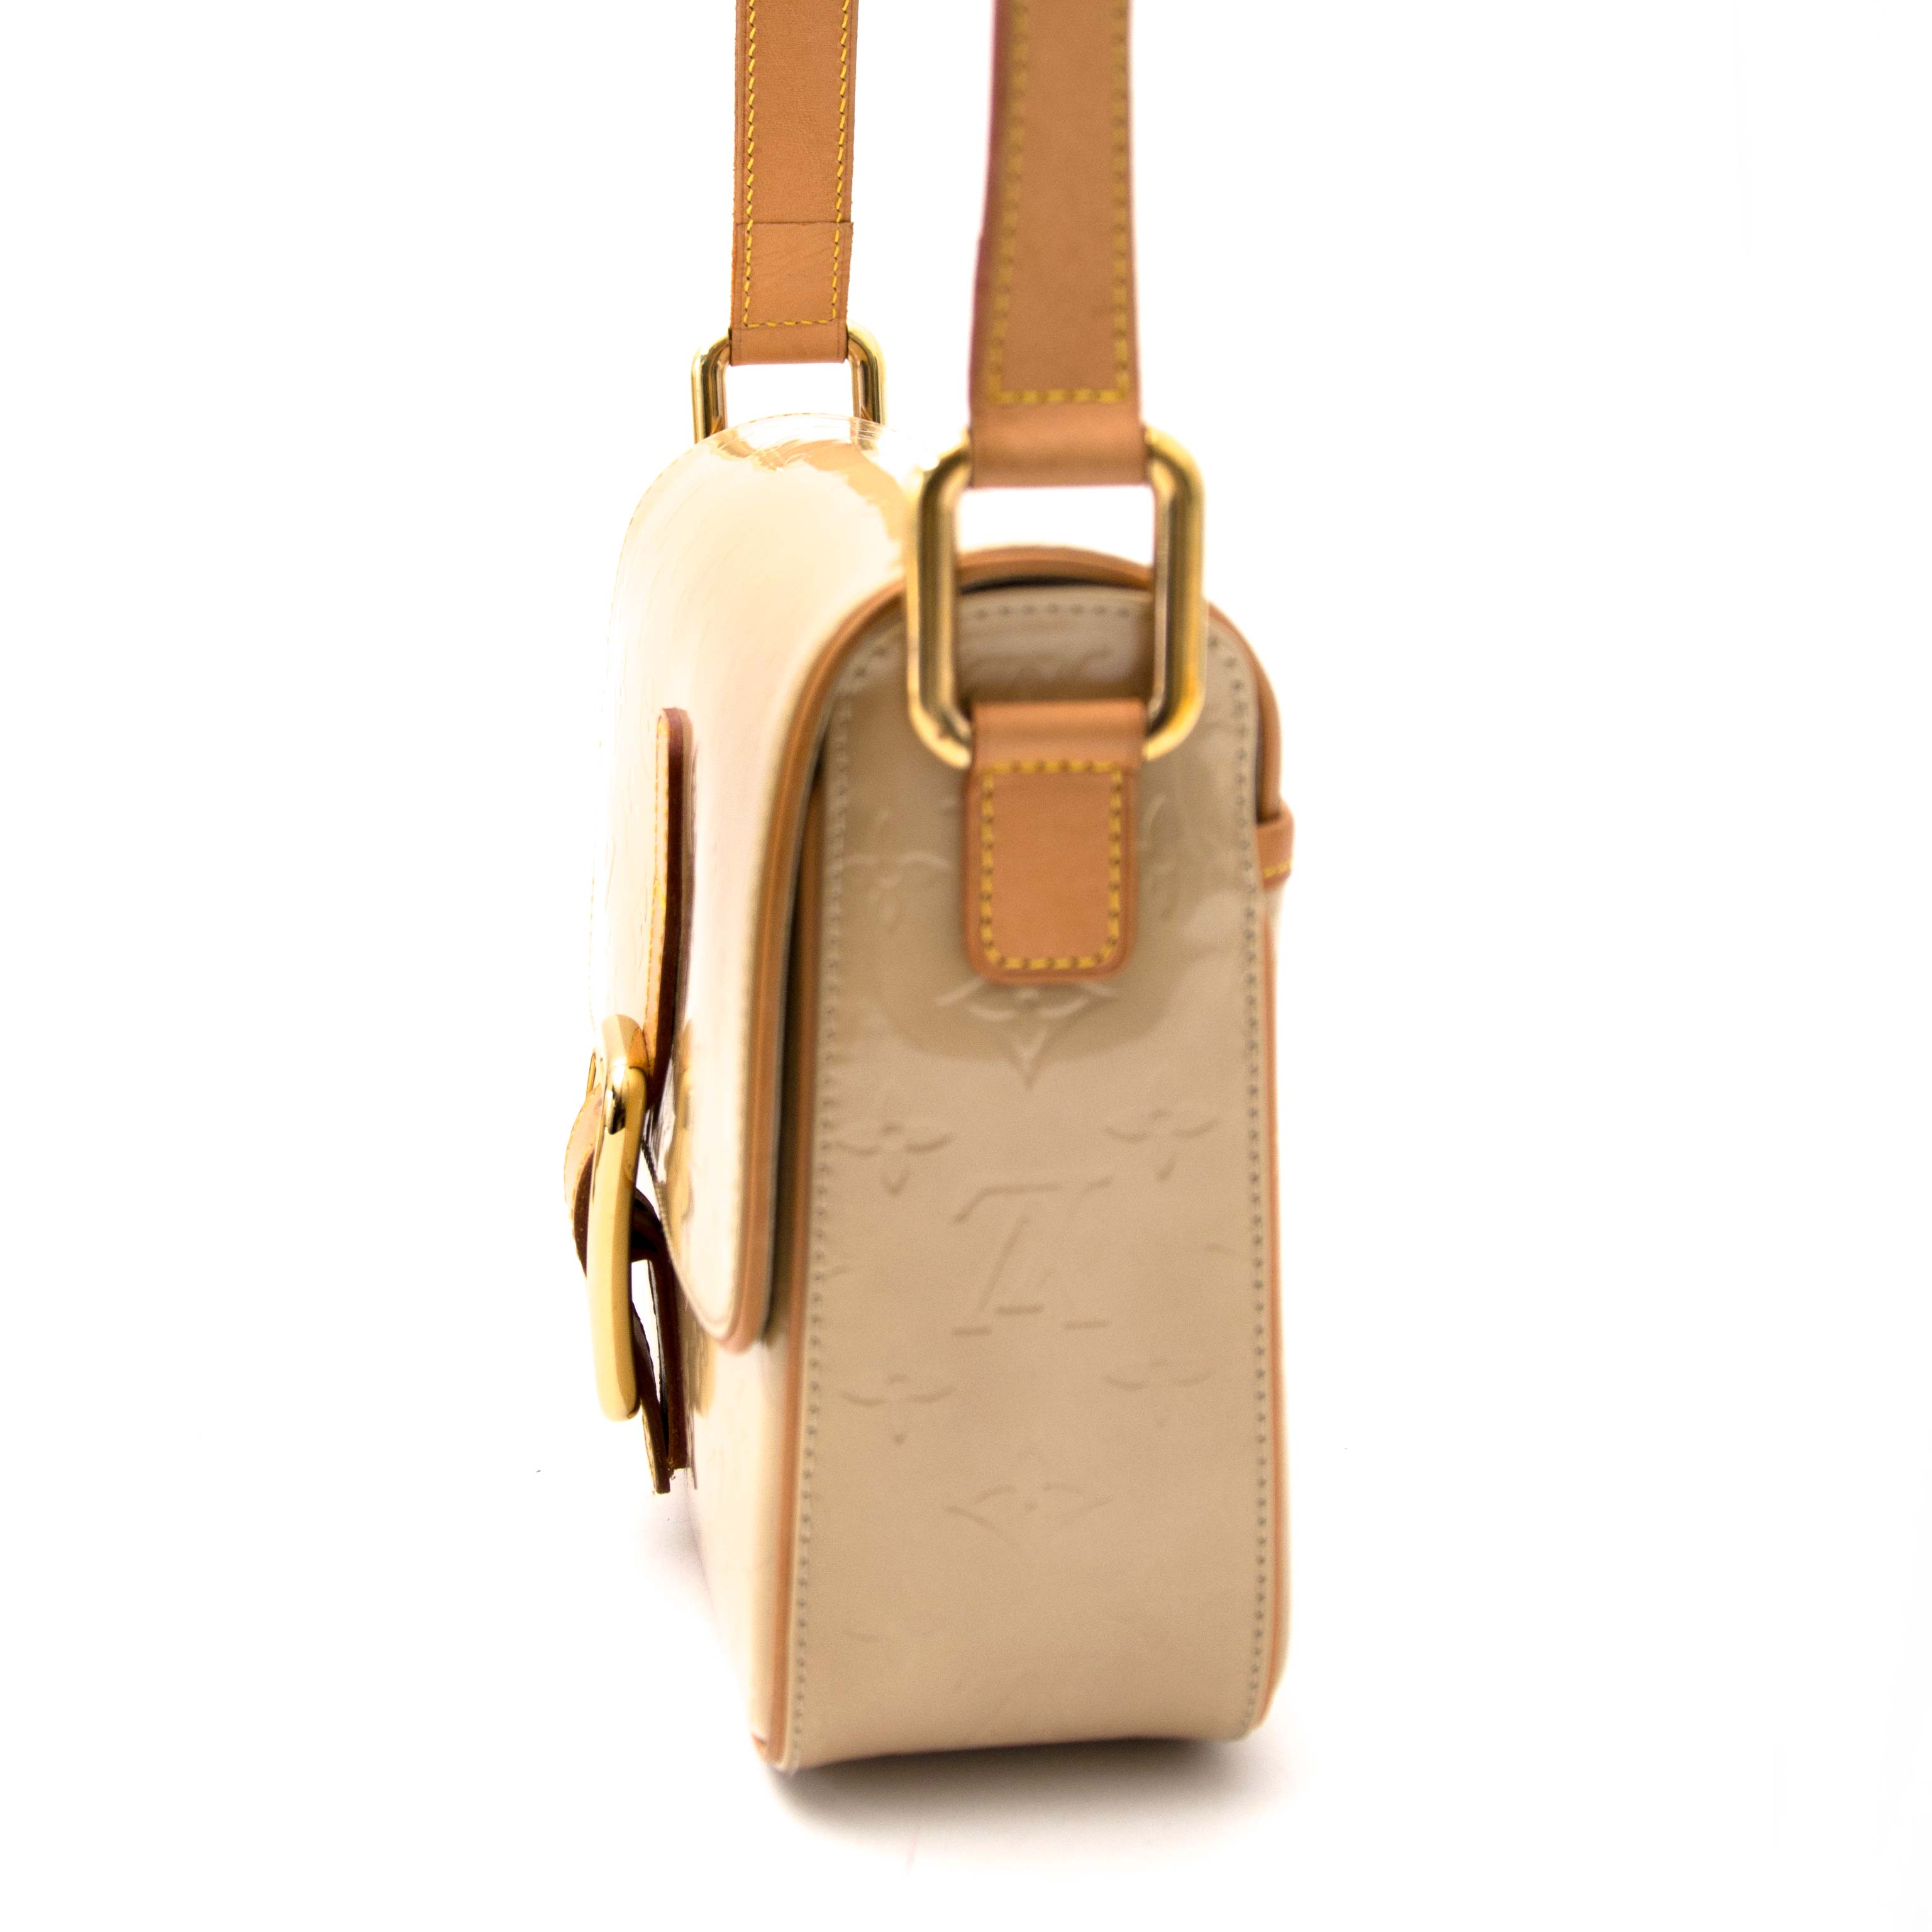 Louis Vuitton Christie Beige Vernis Cross-Body Bag buy and sell your authentic bags for the best price